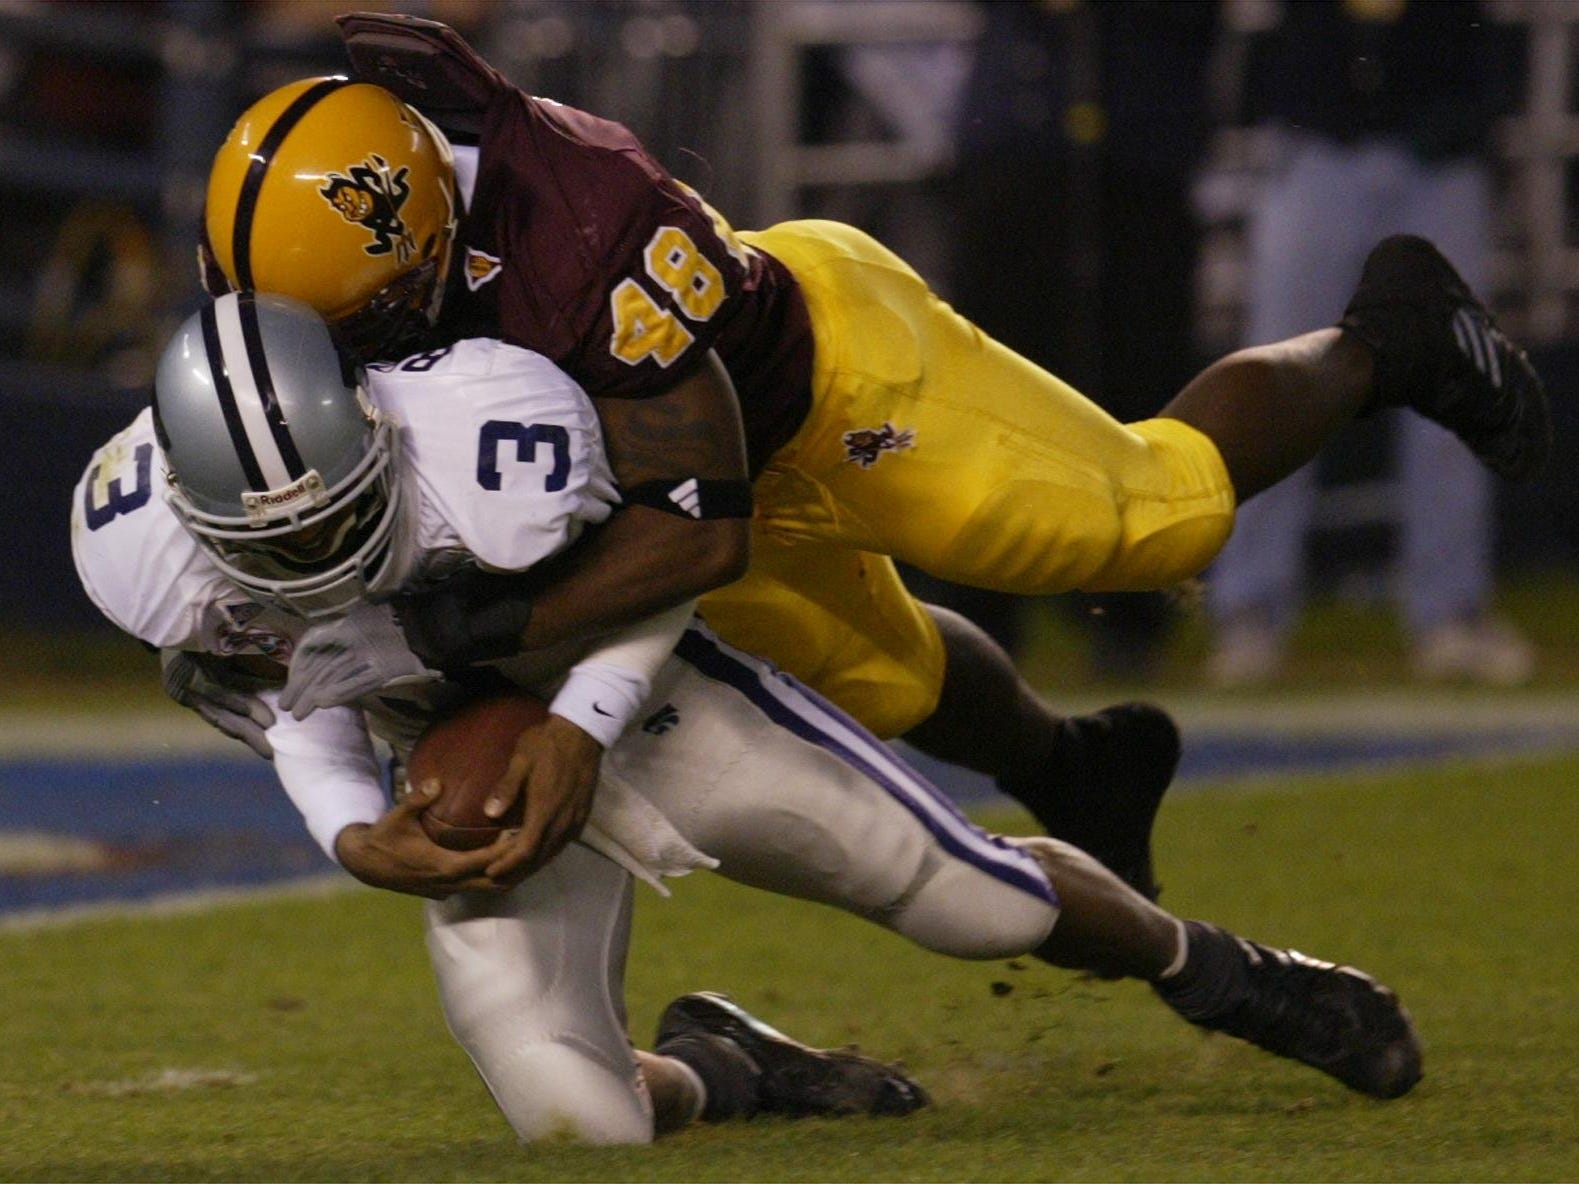 ASU's Terrell Suggs sacks Kansas State QB Ell Roberson #3 during first half action at the Holiday Bowl in San Diego, Calif., Dec. 27, 2002.